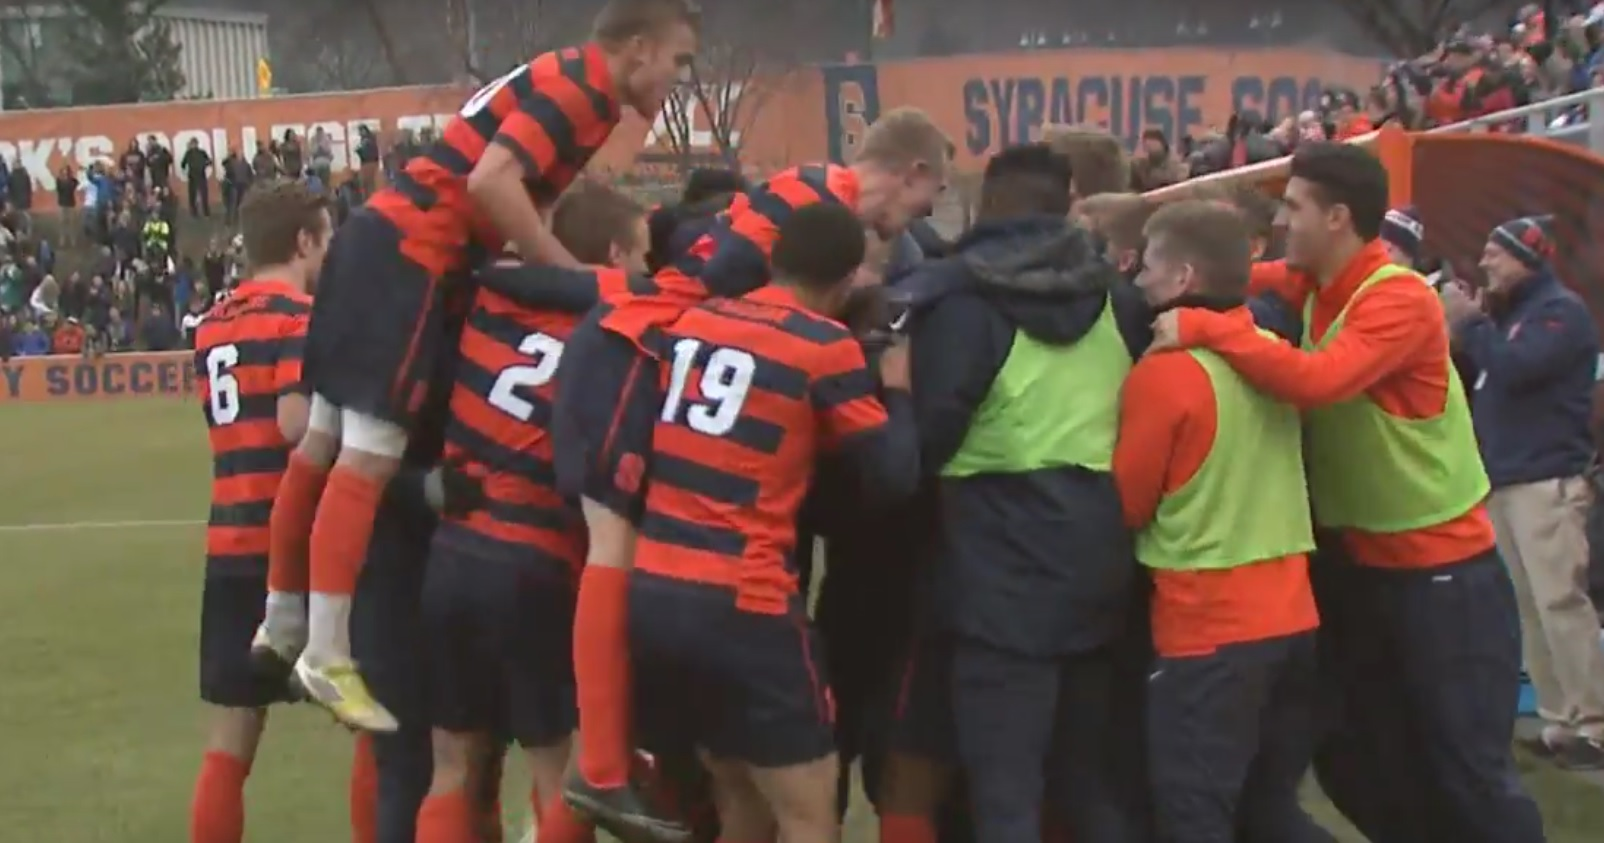 Liam Callahan and the Syracuse Orange celebrate Ben Polk's goal, the only tally of the match. (YouTube screen shot)